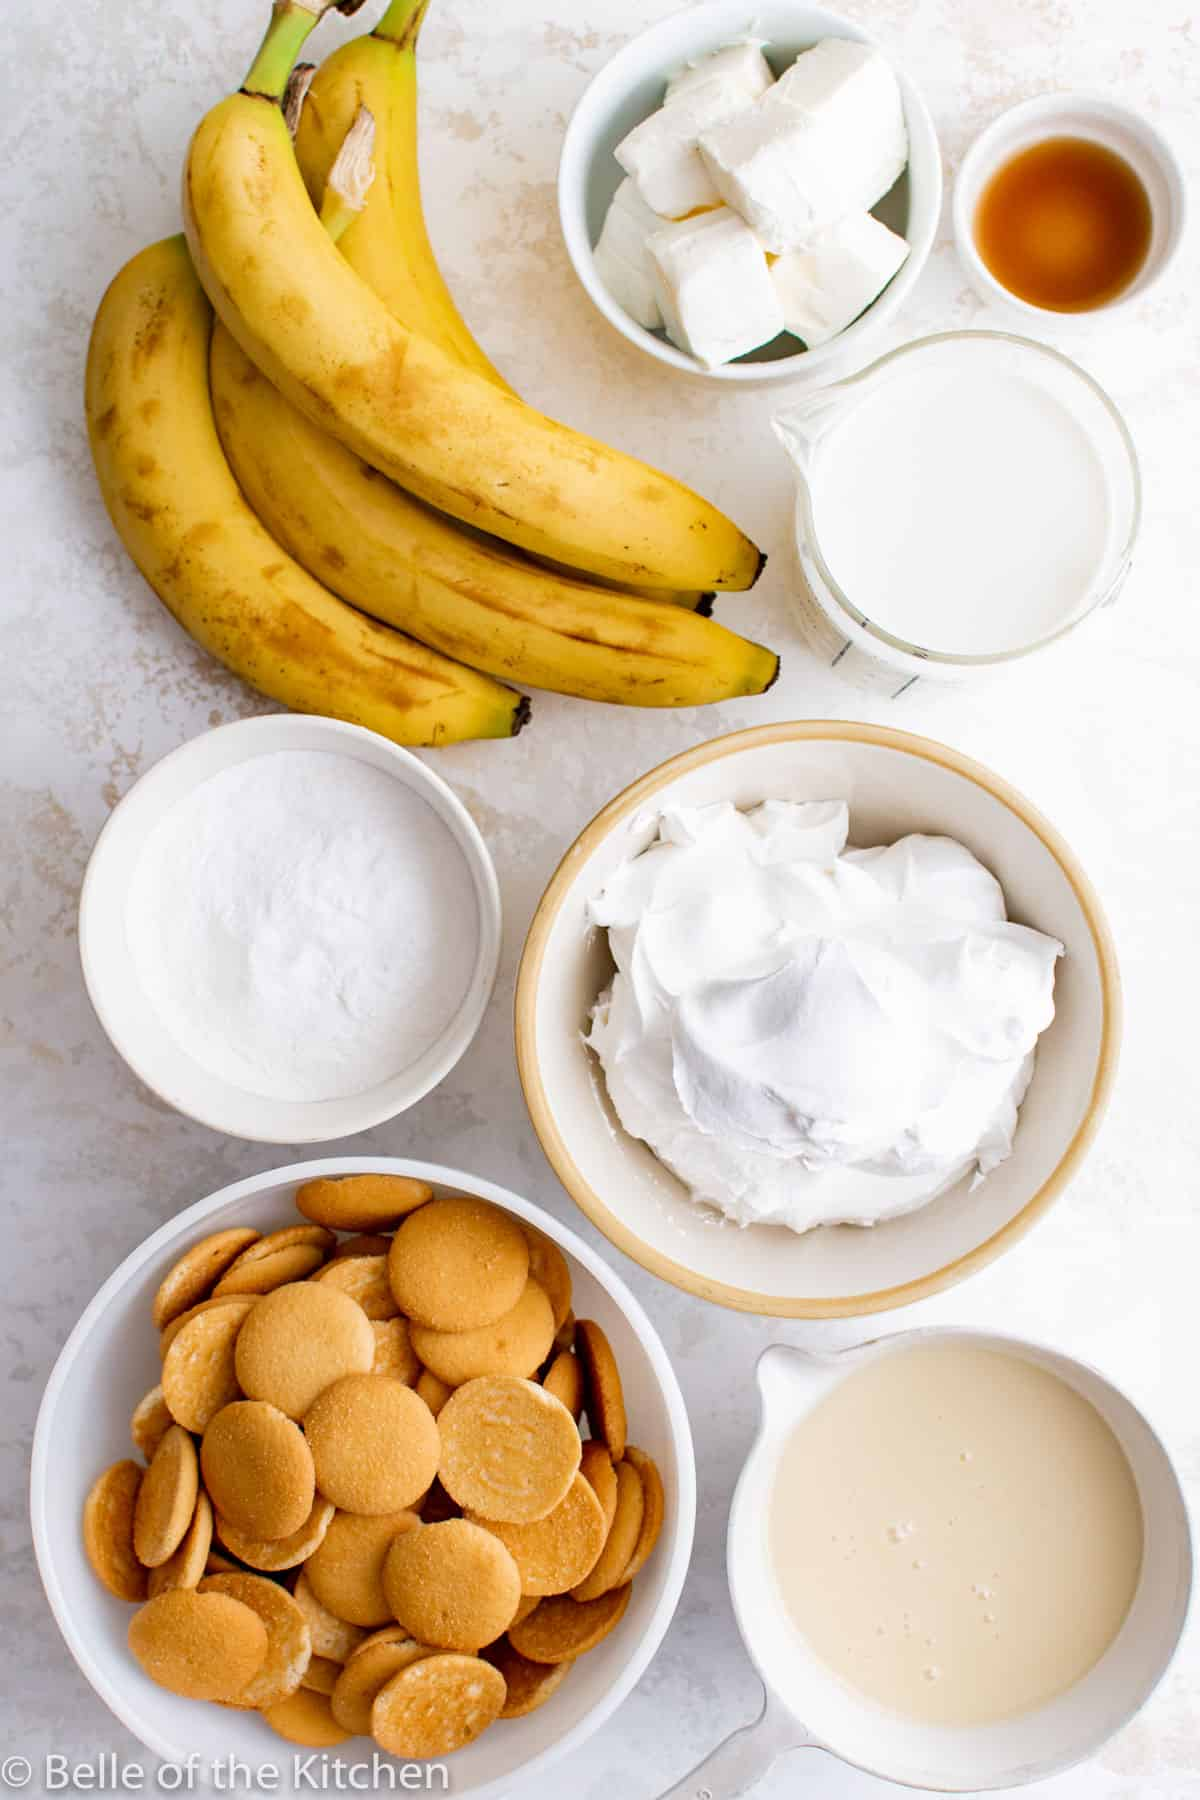 ingredients laid out to make banana pudding